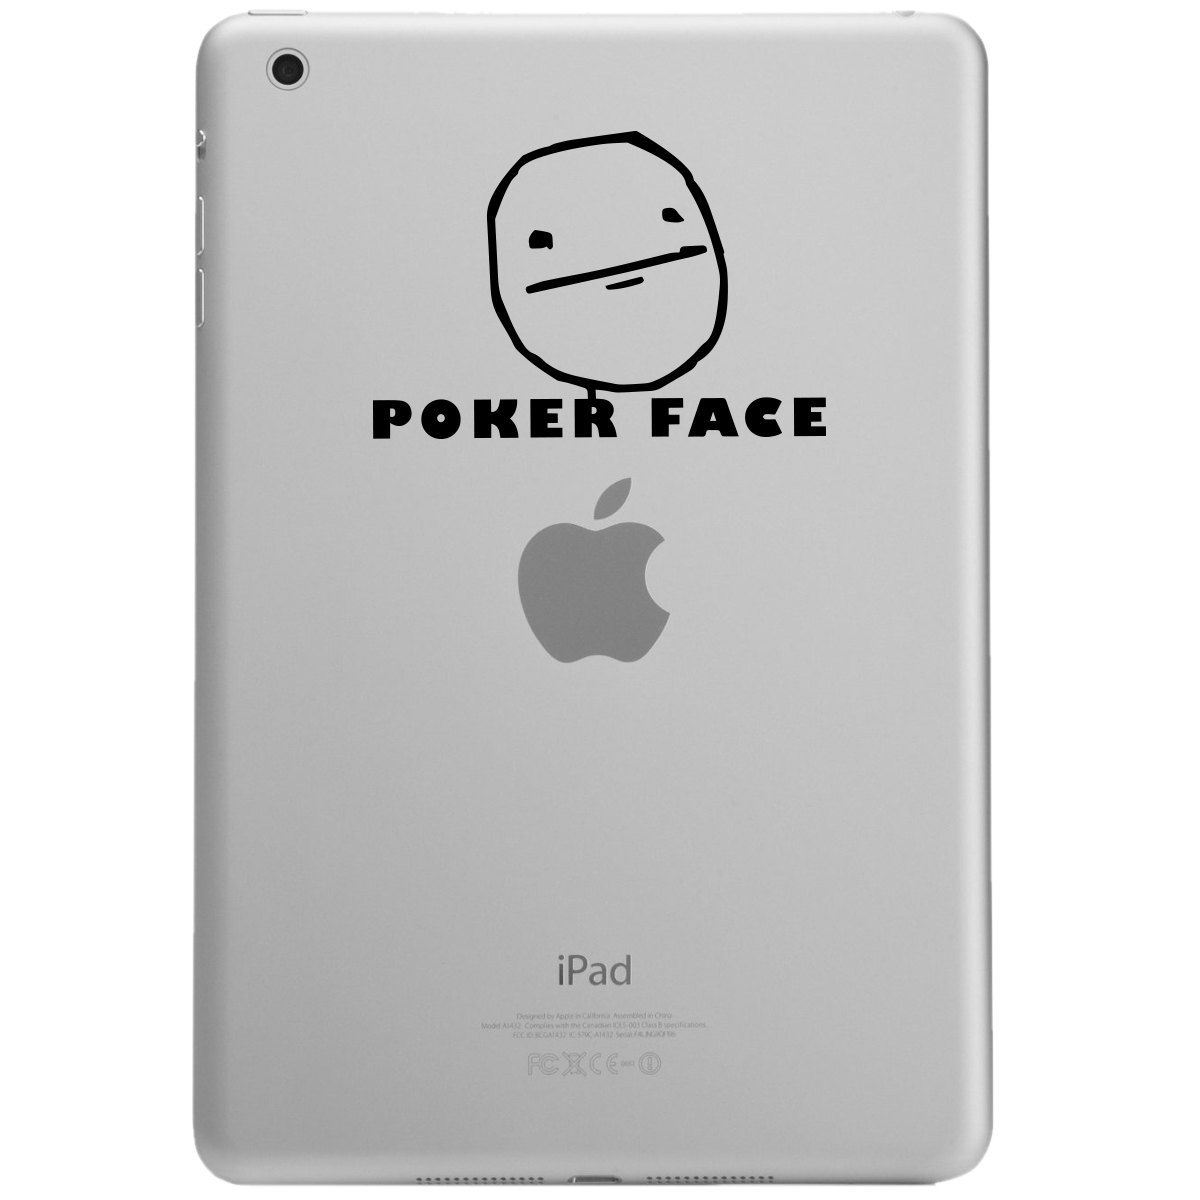 JDM Funny Poker Face Cartoon Meme iPad Tablet Vinyl Sticker Decal